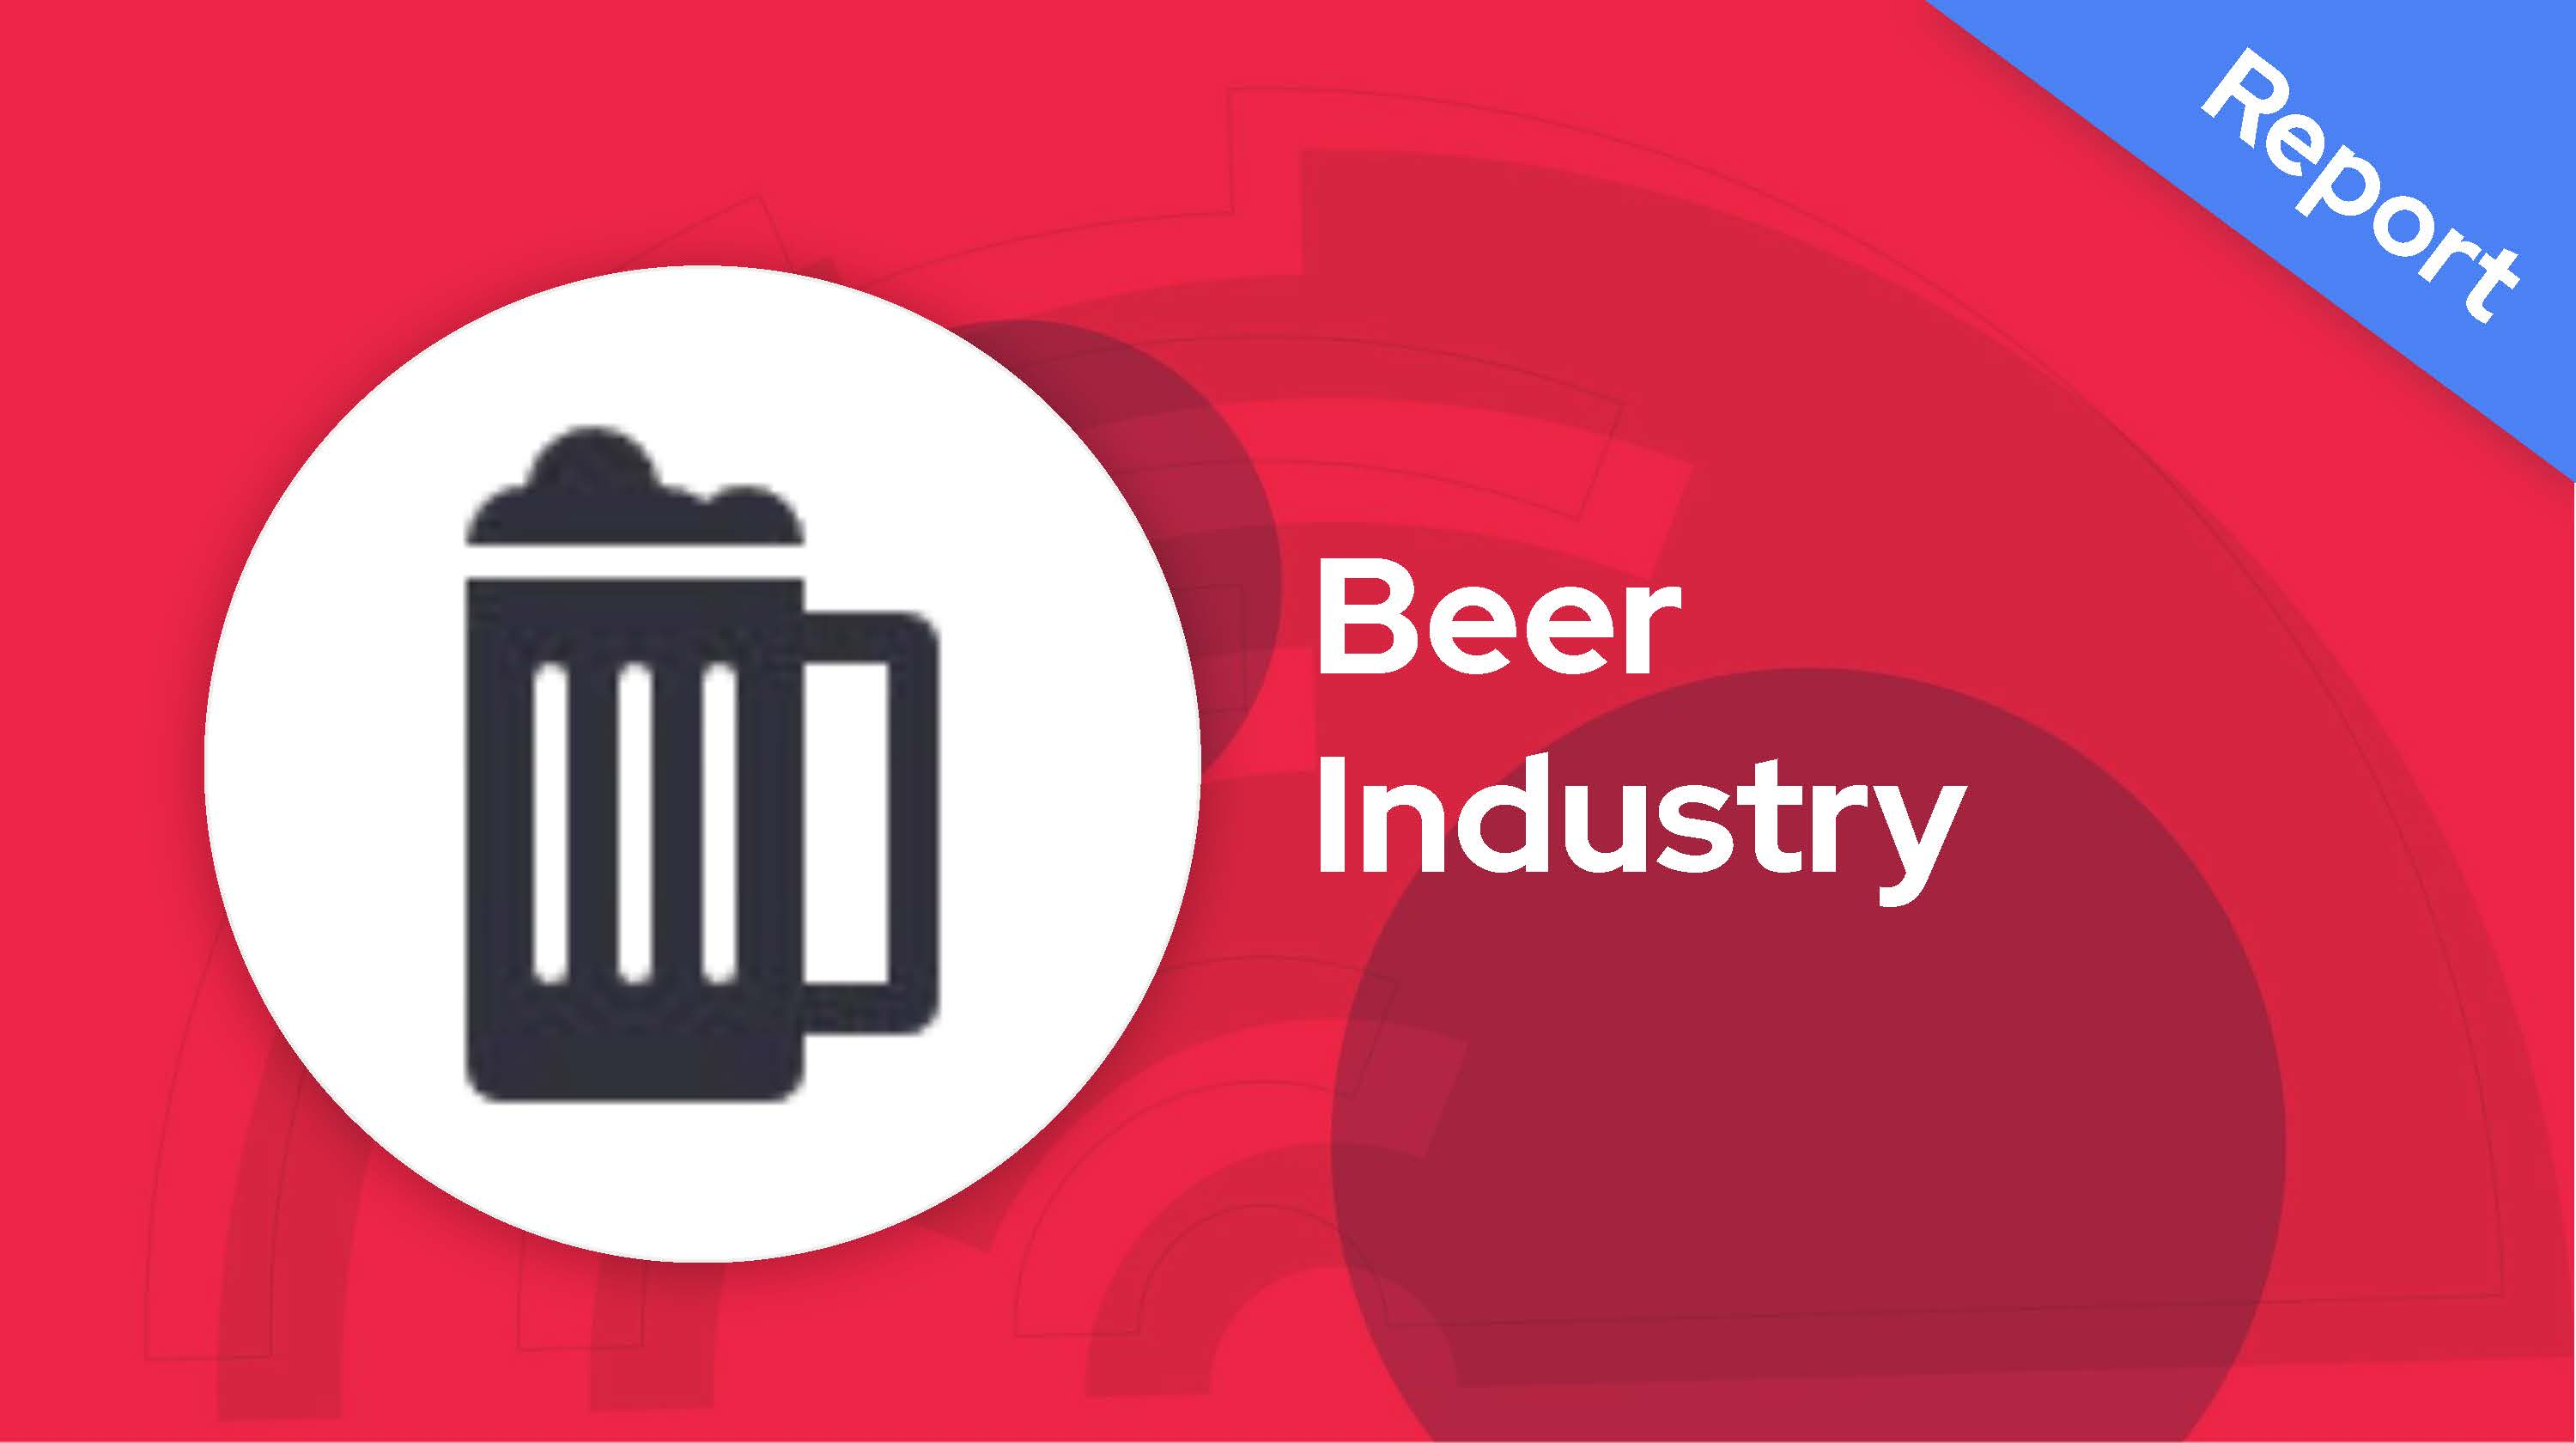 Paid Social Snapshot: Beer Industry